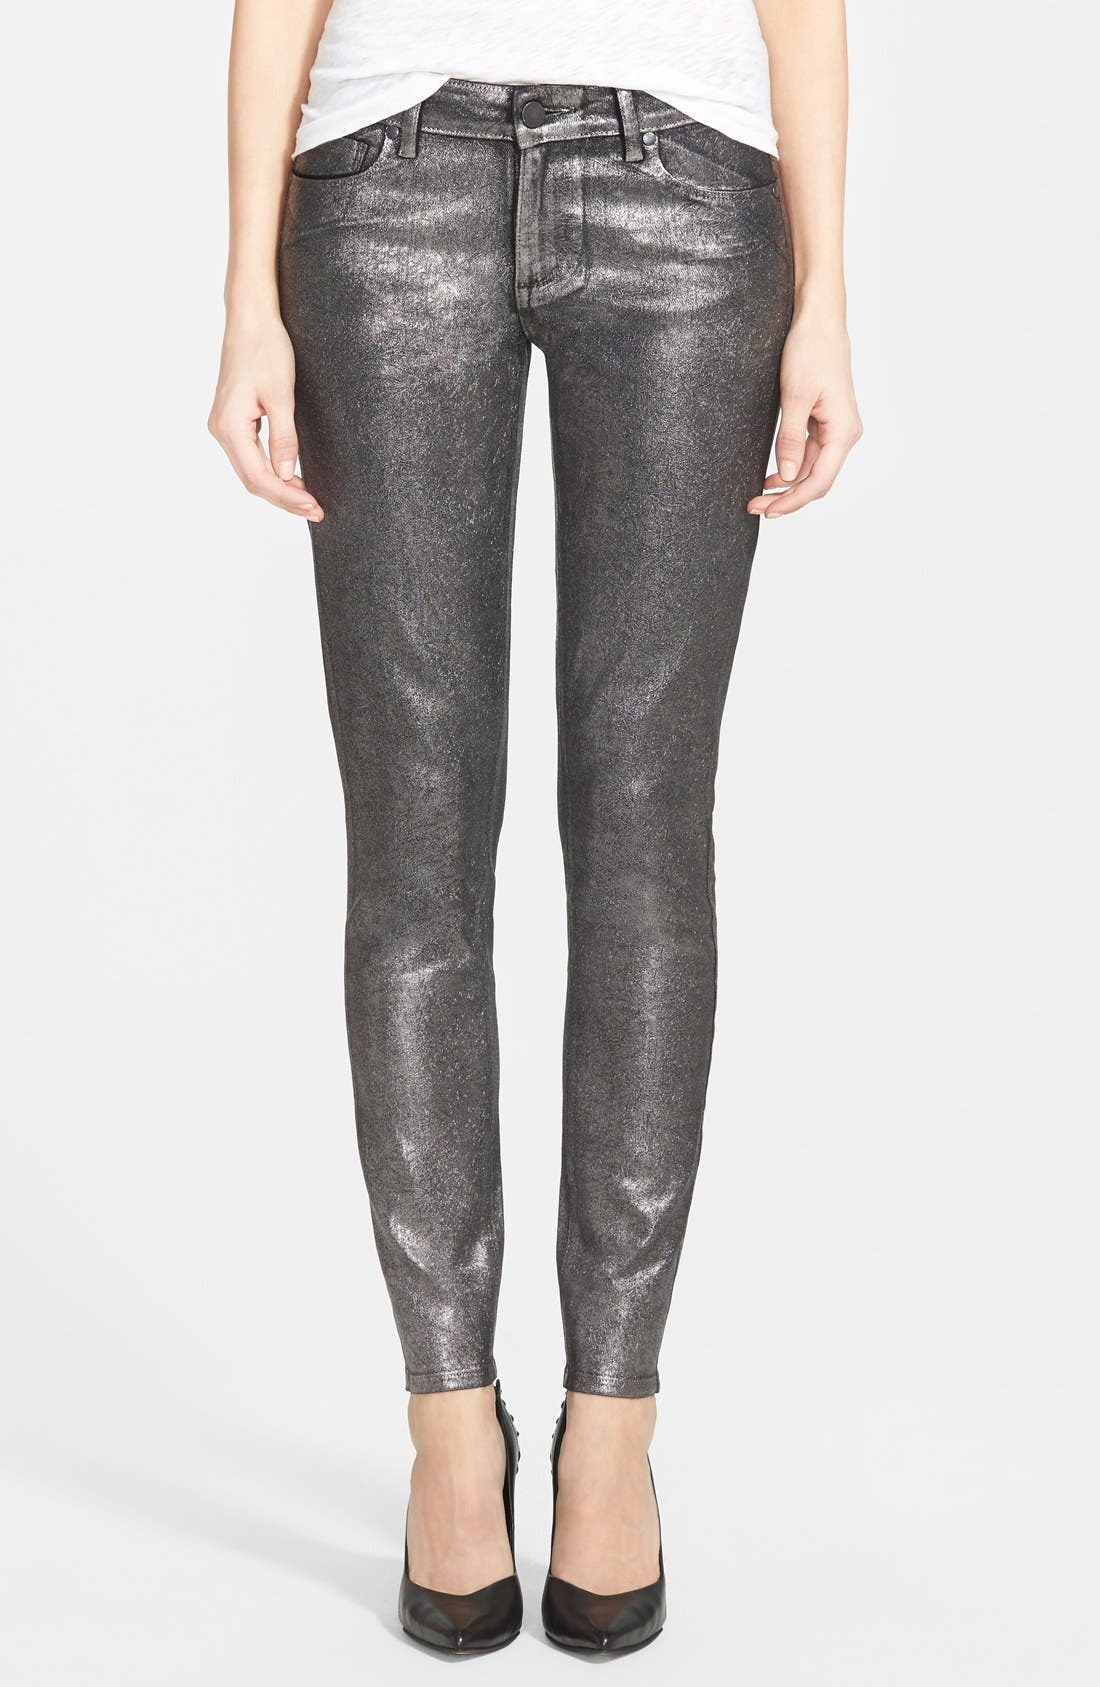 Alternate Image 1 Selected - Paige Denim 'Verdugo' Ultra Skinny Jeans (Pewter Crackle)